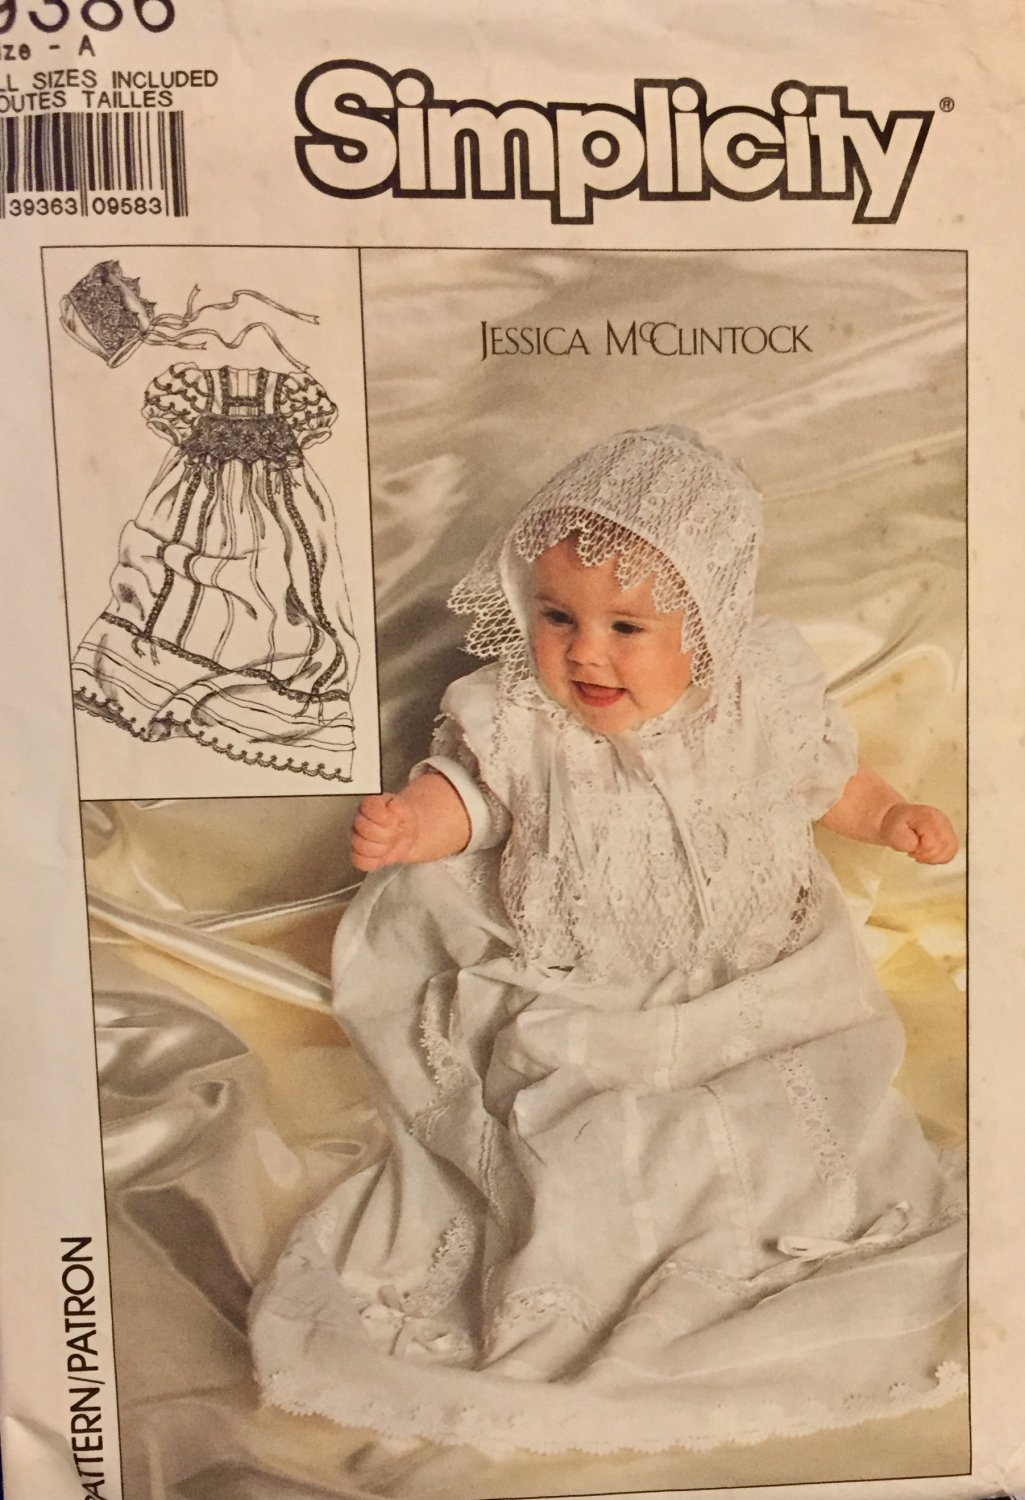 Simplicity Pattern 9386: Babies� Christening Gown, Slip and Hat. Jessica McClintock. Sizes 0- 12M